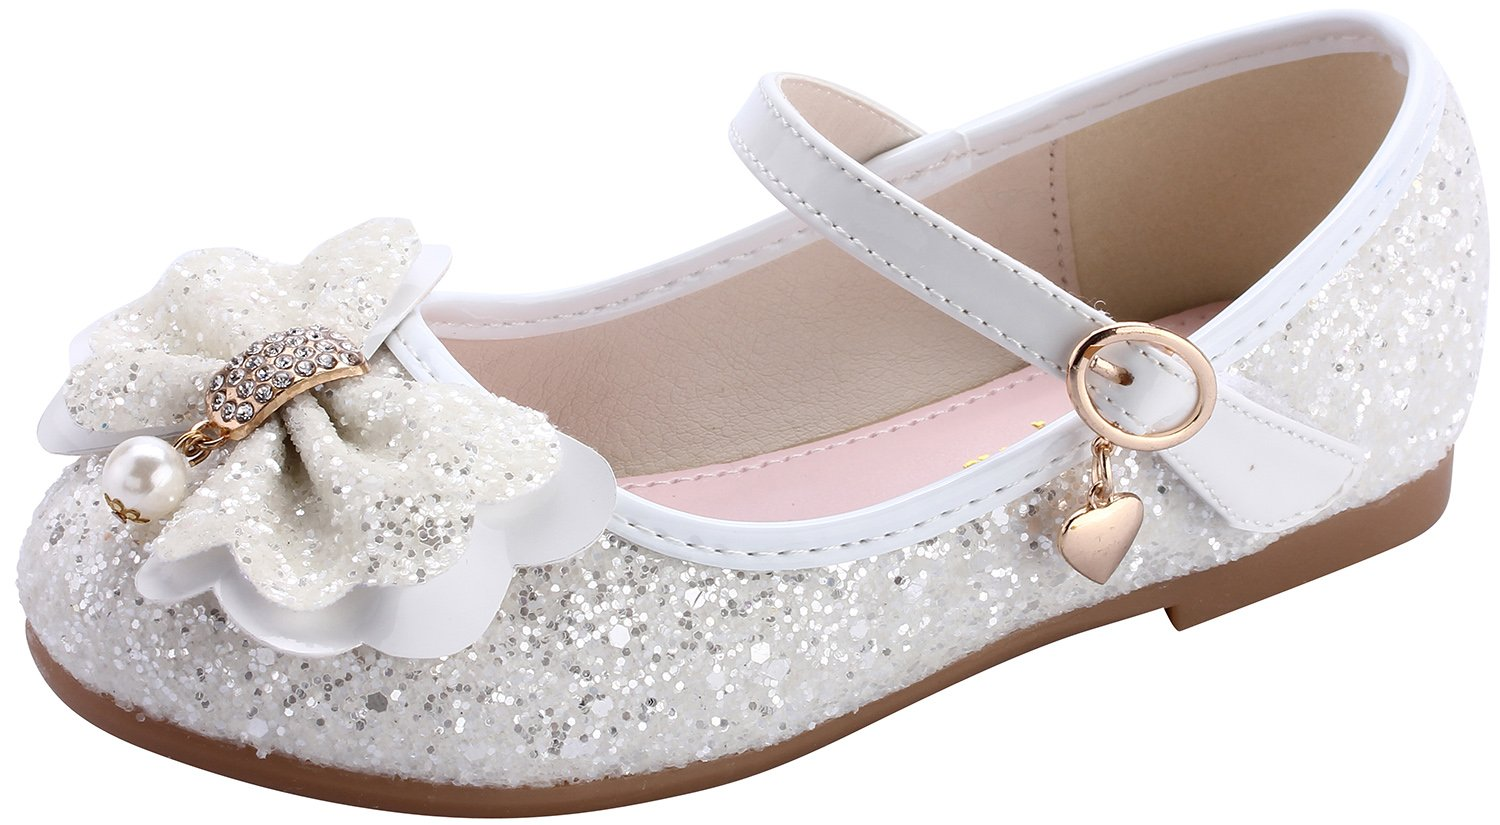 miaoshop Flower Girls Dress Ballet Flats Casual School Mary Jane Glitter Bow Shoes (10 M US Toddler, White) by miaoshop (Image #1)